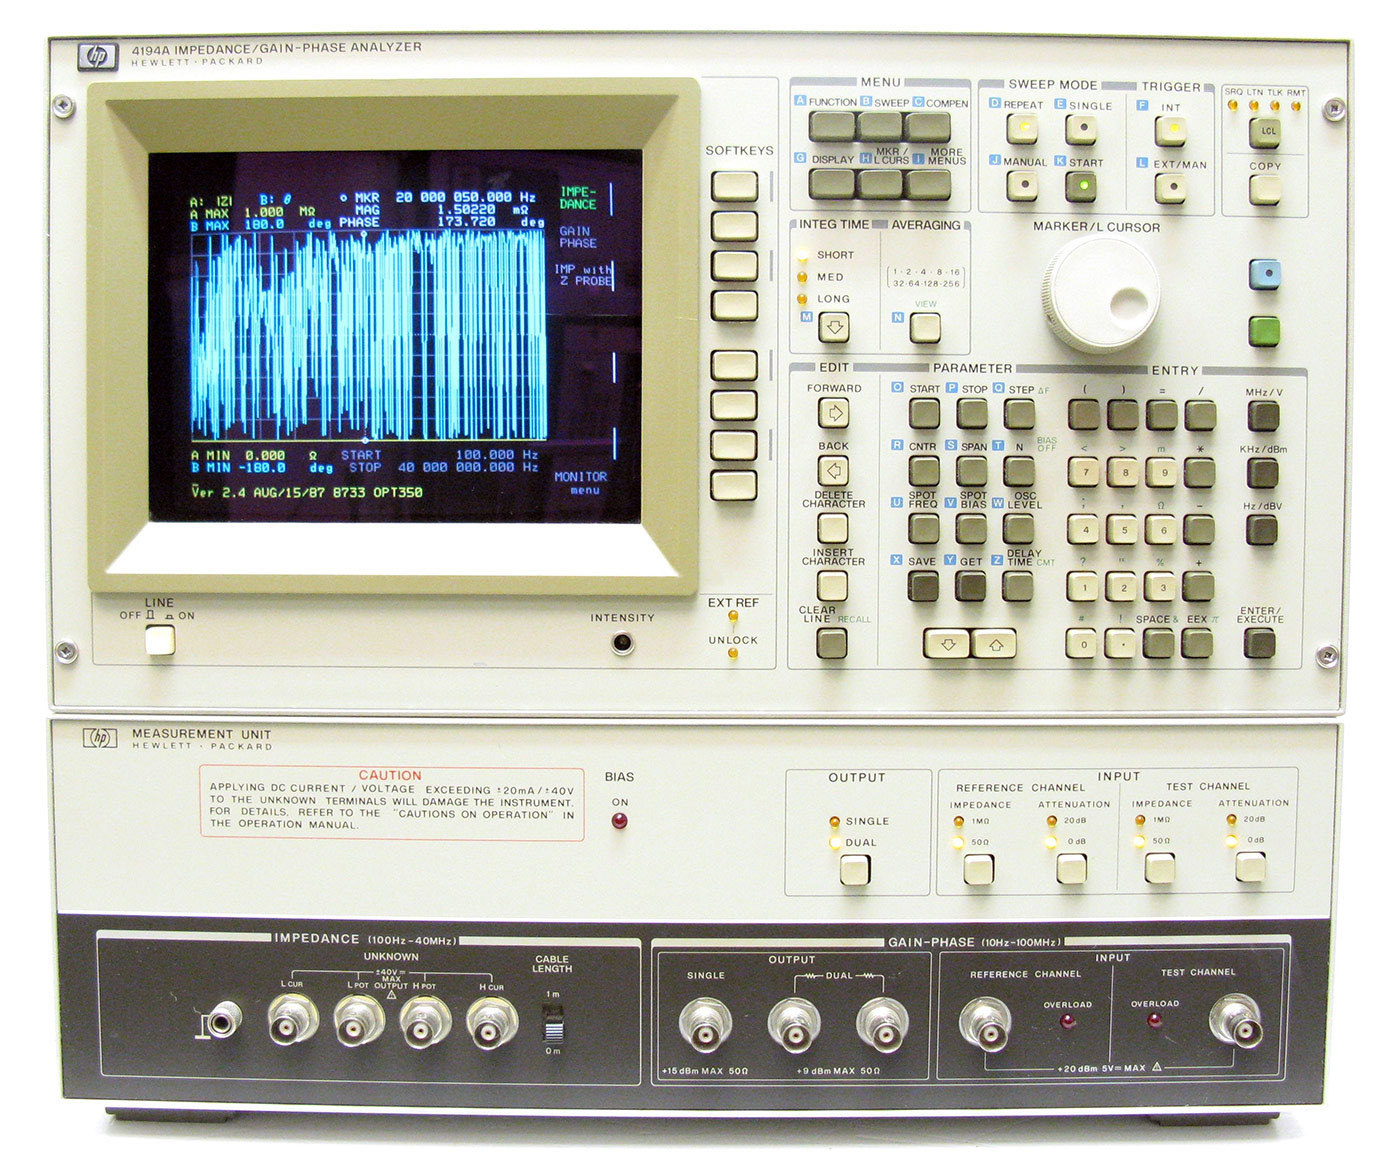 HP/Agilent 4194A Impedance/Gain-Phase Analyzer